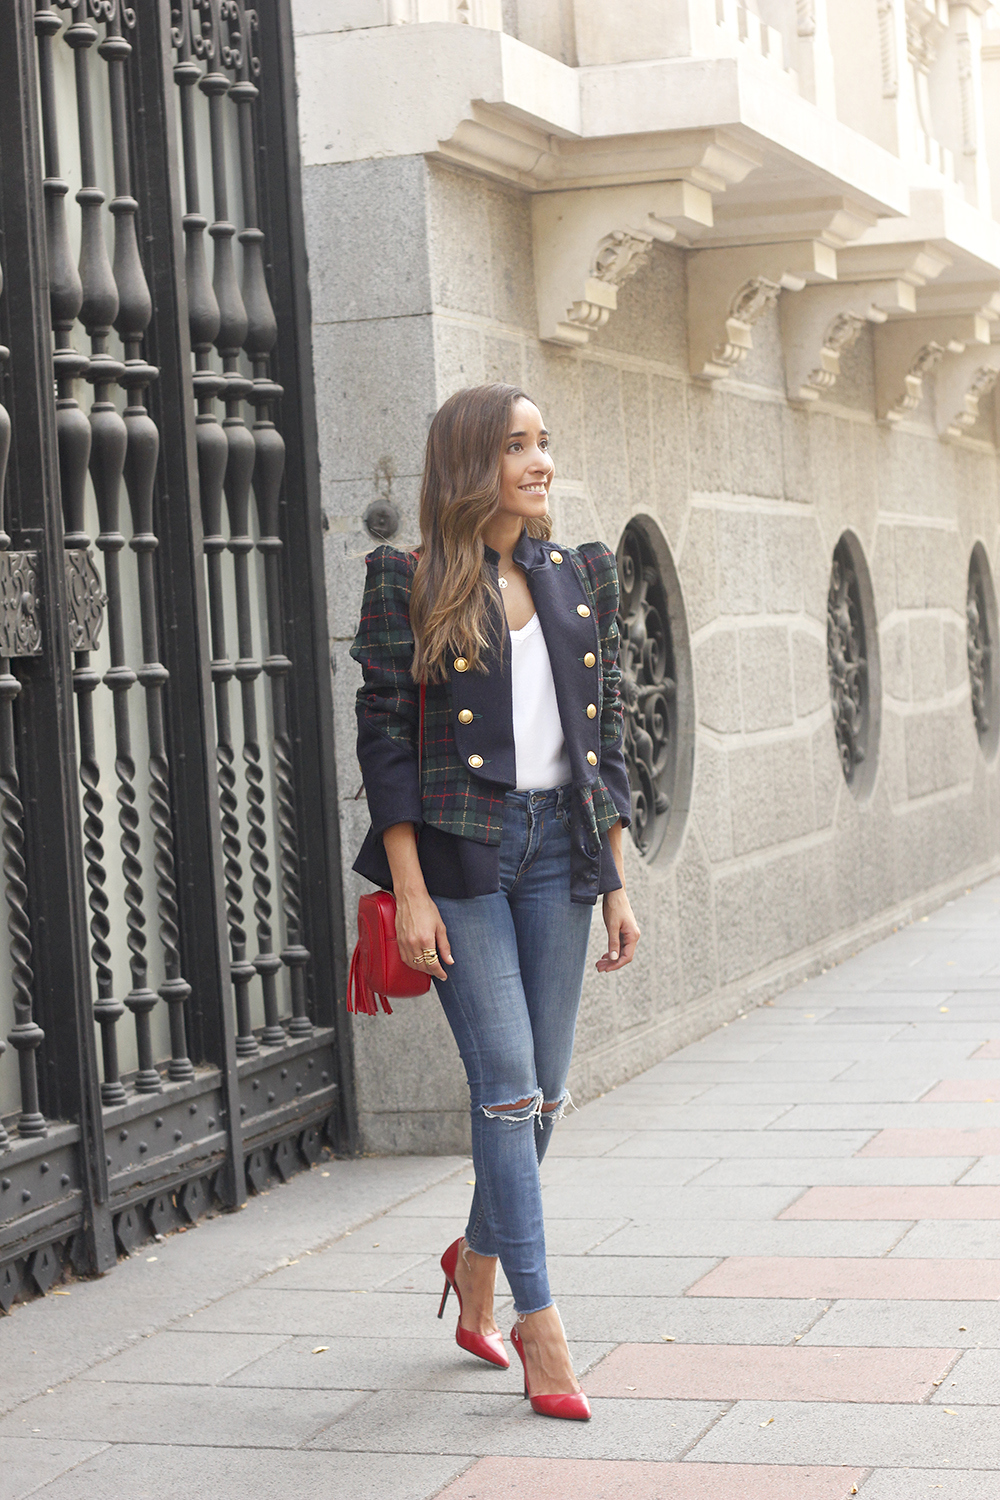 CHECKED BLAZER highly preppy gucci bag ripped jeans street style 2018 outfit02